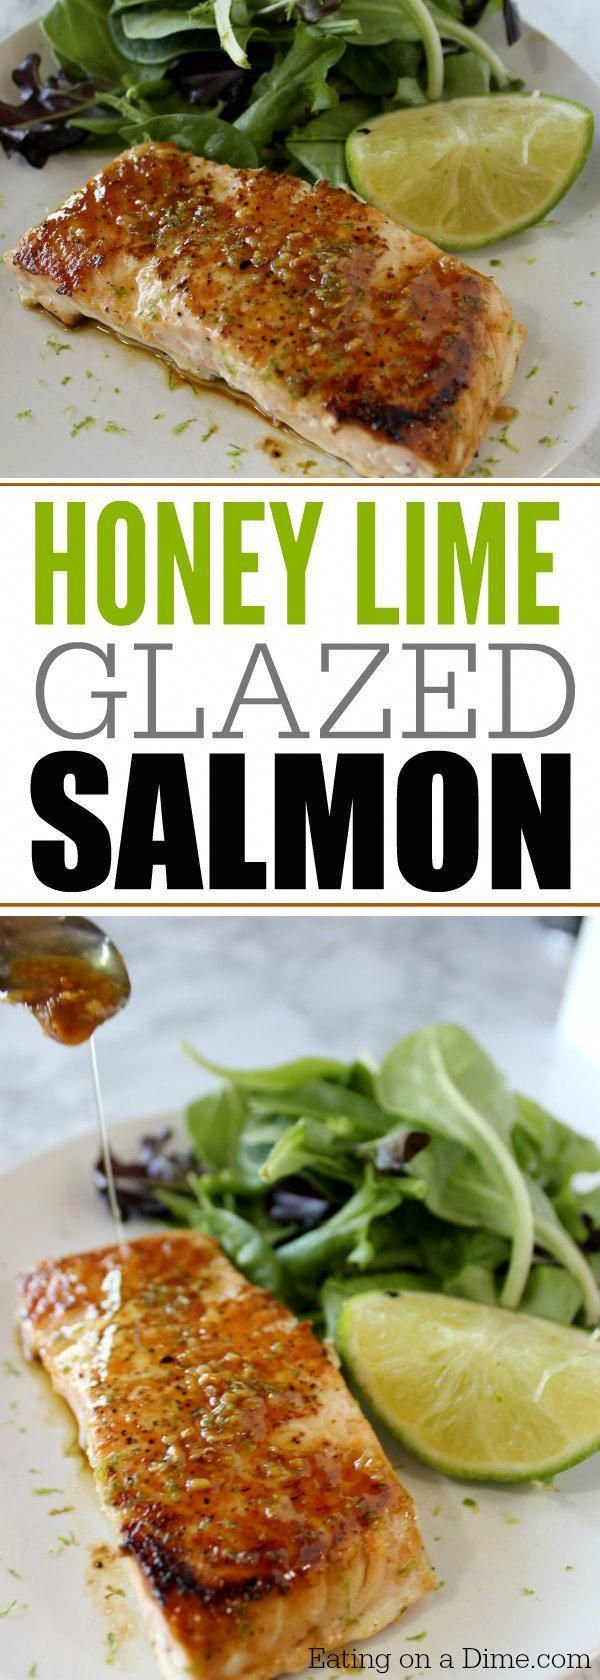 Honey Glazed Salmon with lime images